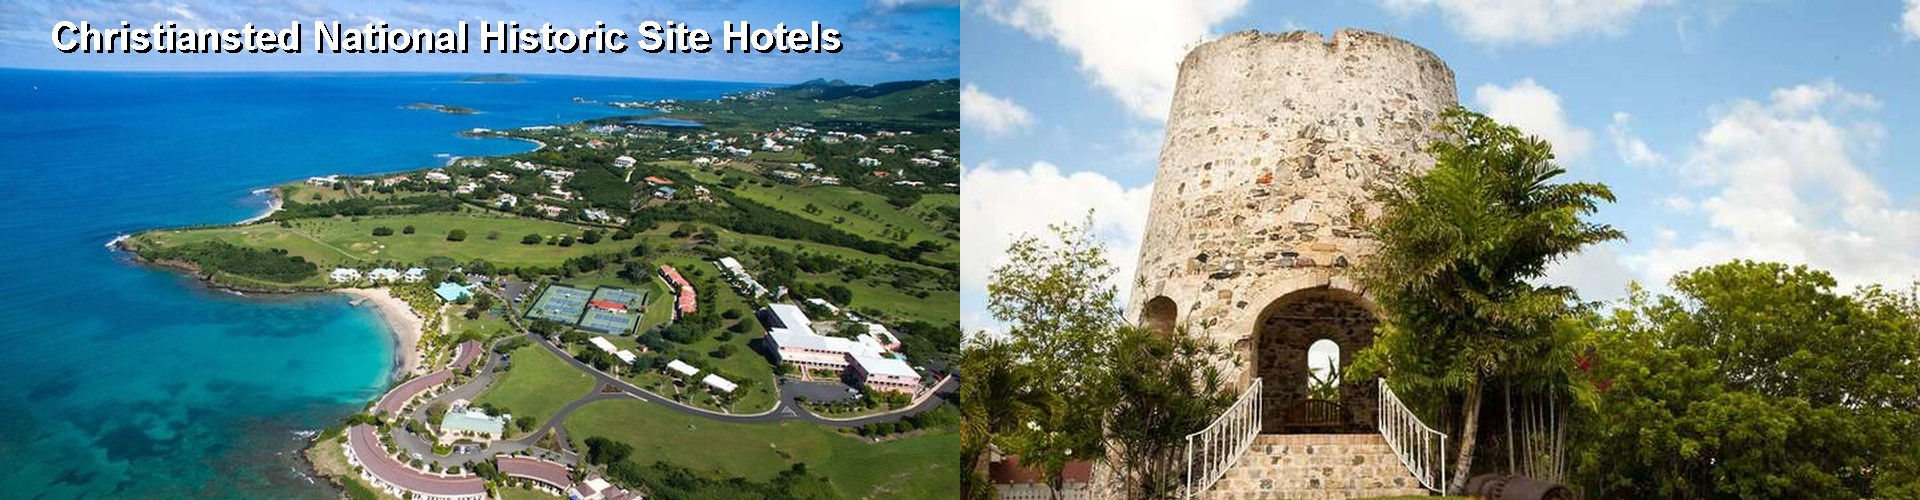 5 Best Hotels near Christiansted National Historic Site